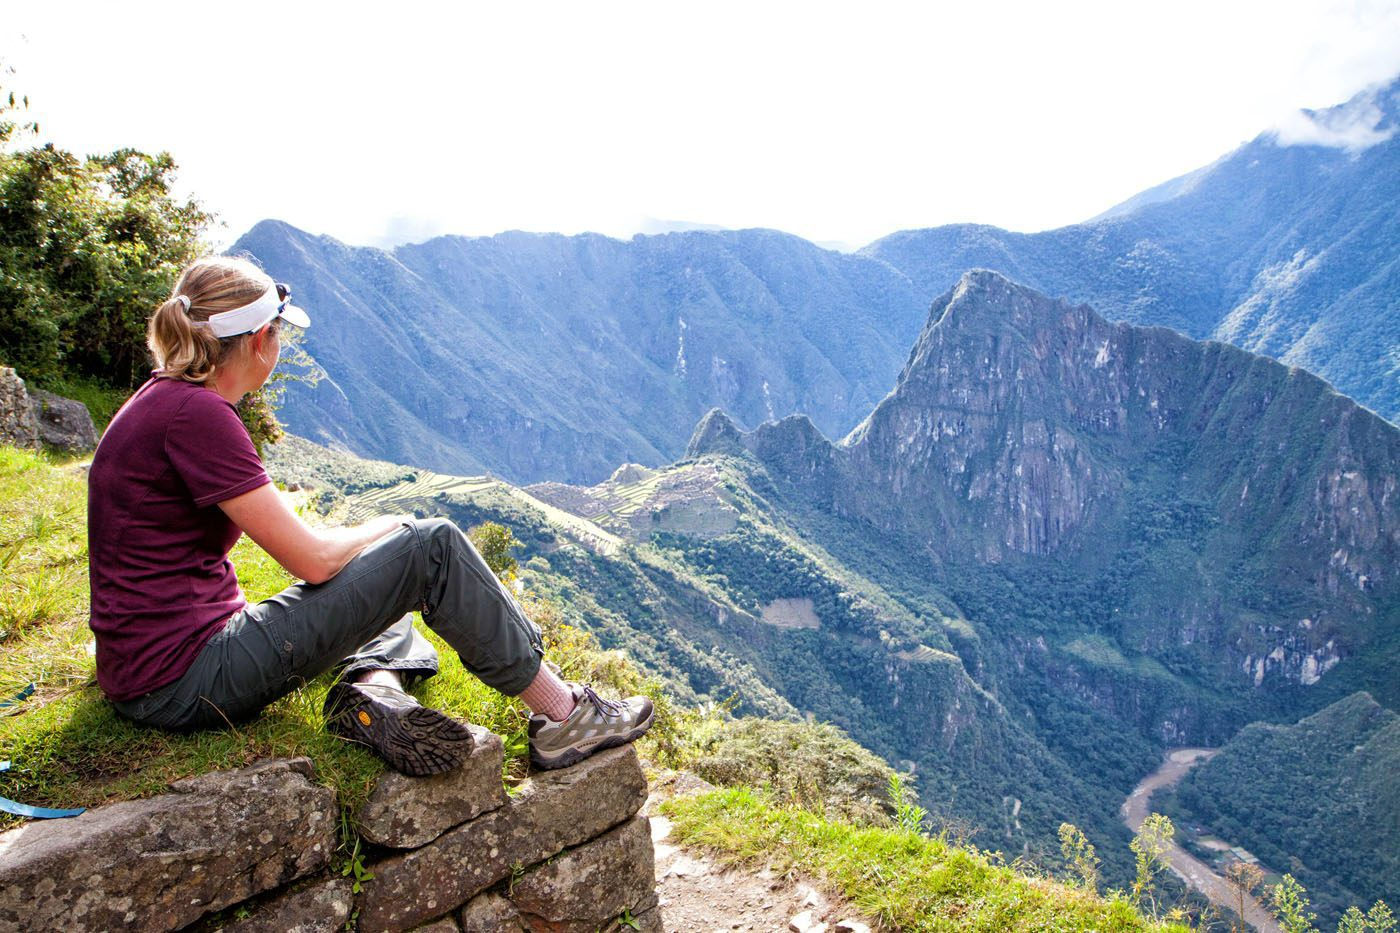 Julie Rivenbark at Machu Picchu